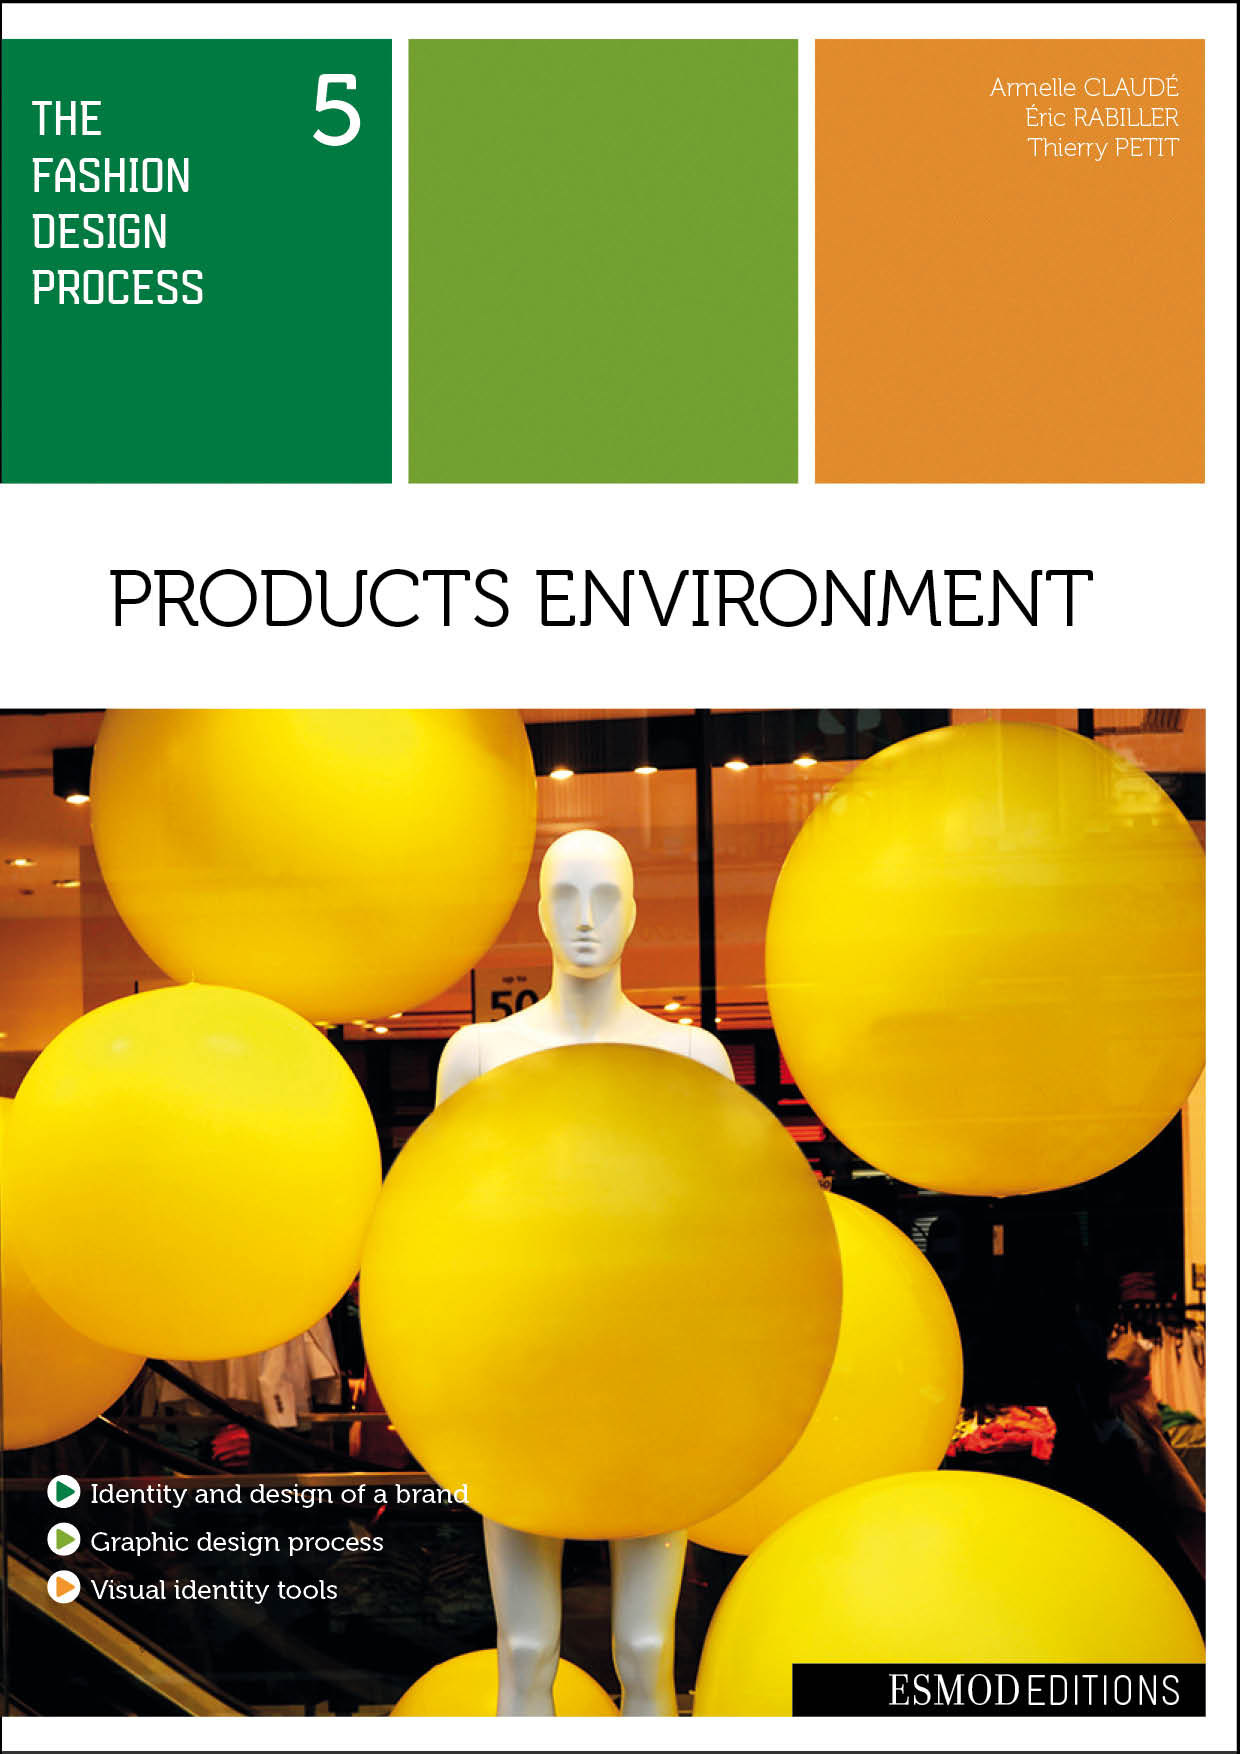 The fashion design process tome 5: Products environment